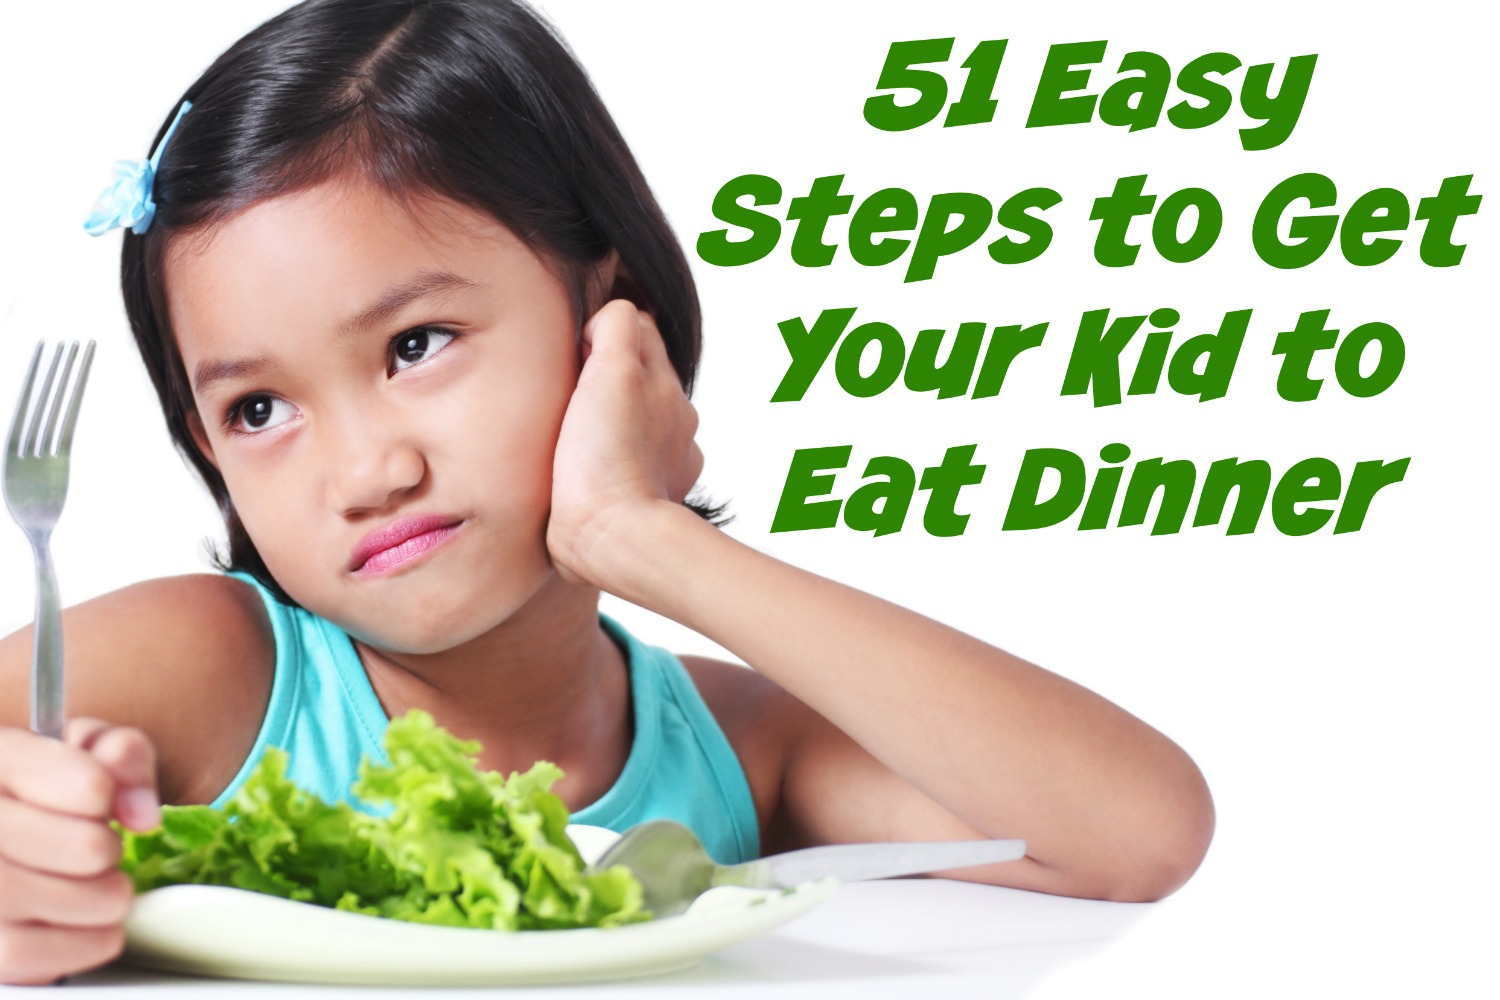 51 Easy Steps to Get Your Kid to Eat Dinner